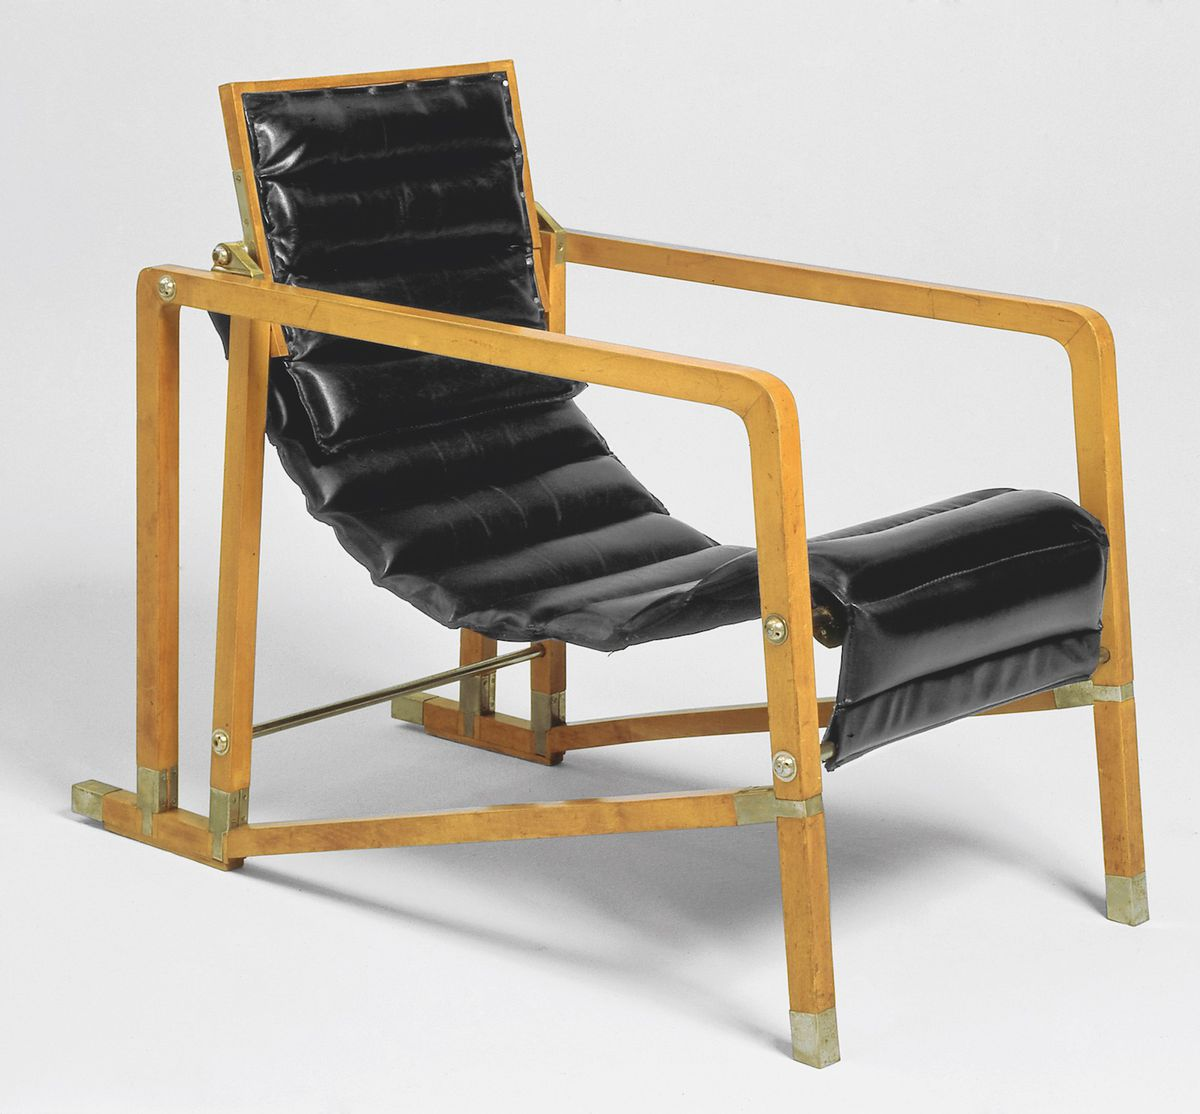 A chair made with wooden frame and curved leather seat.